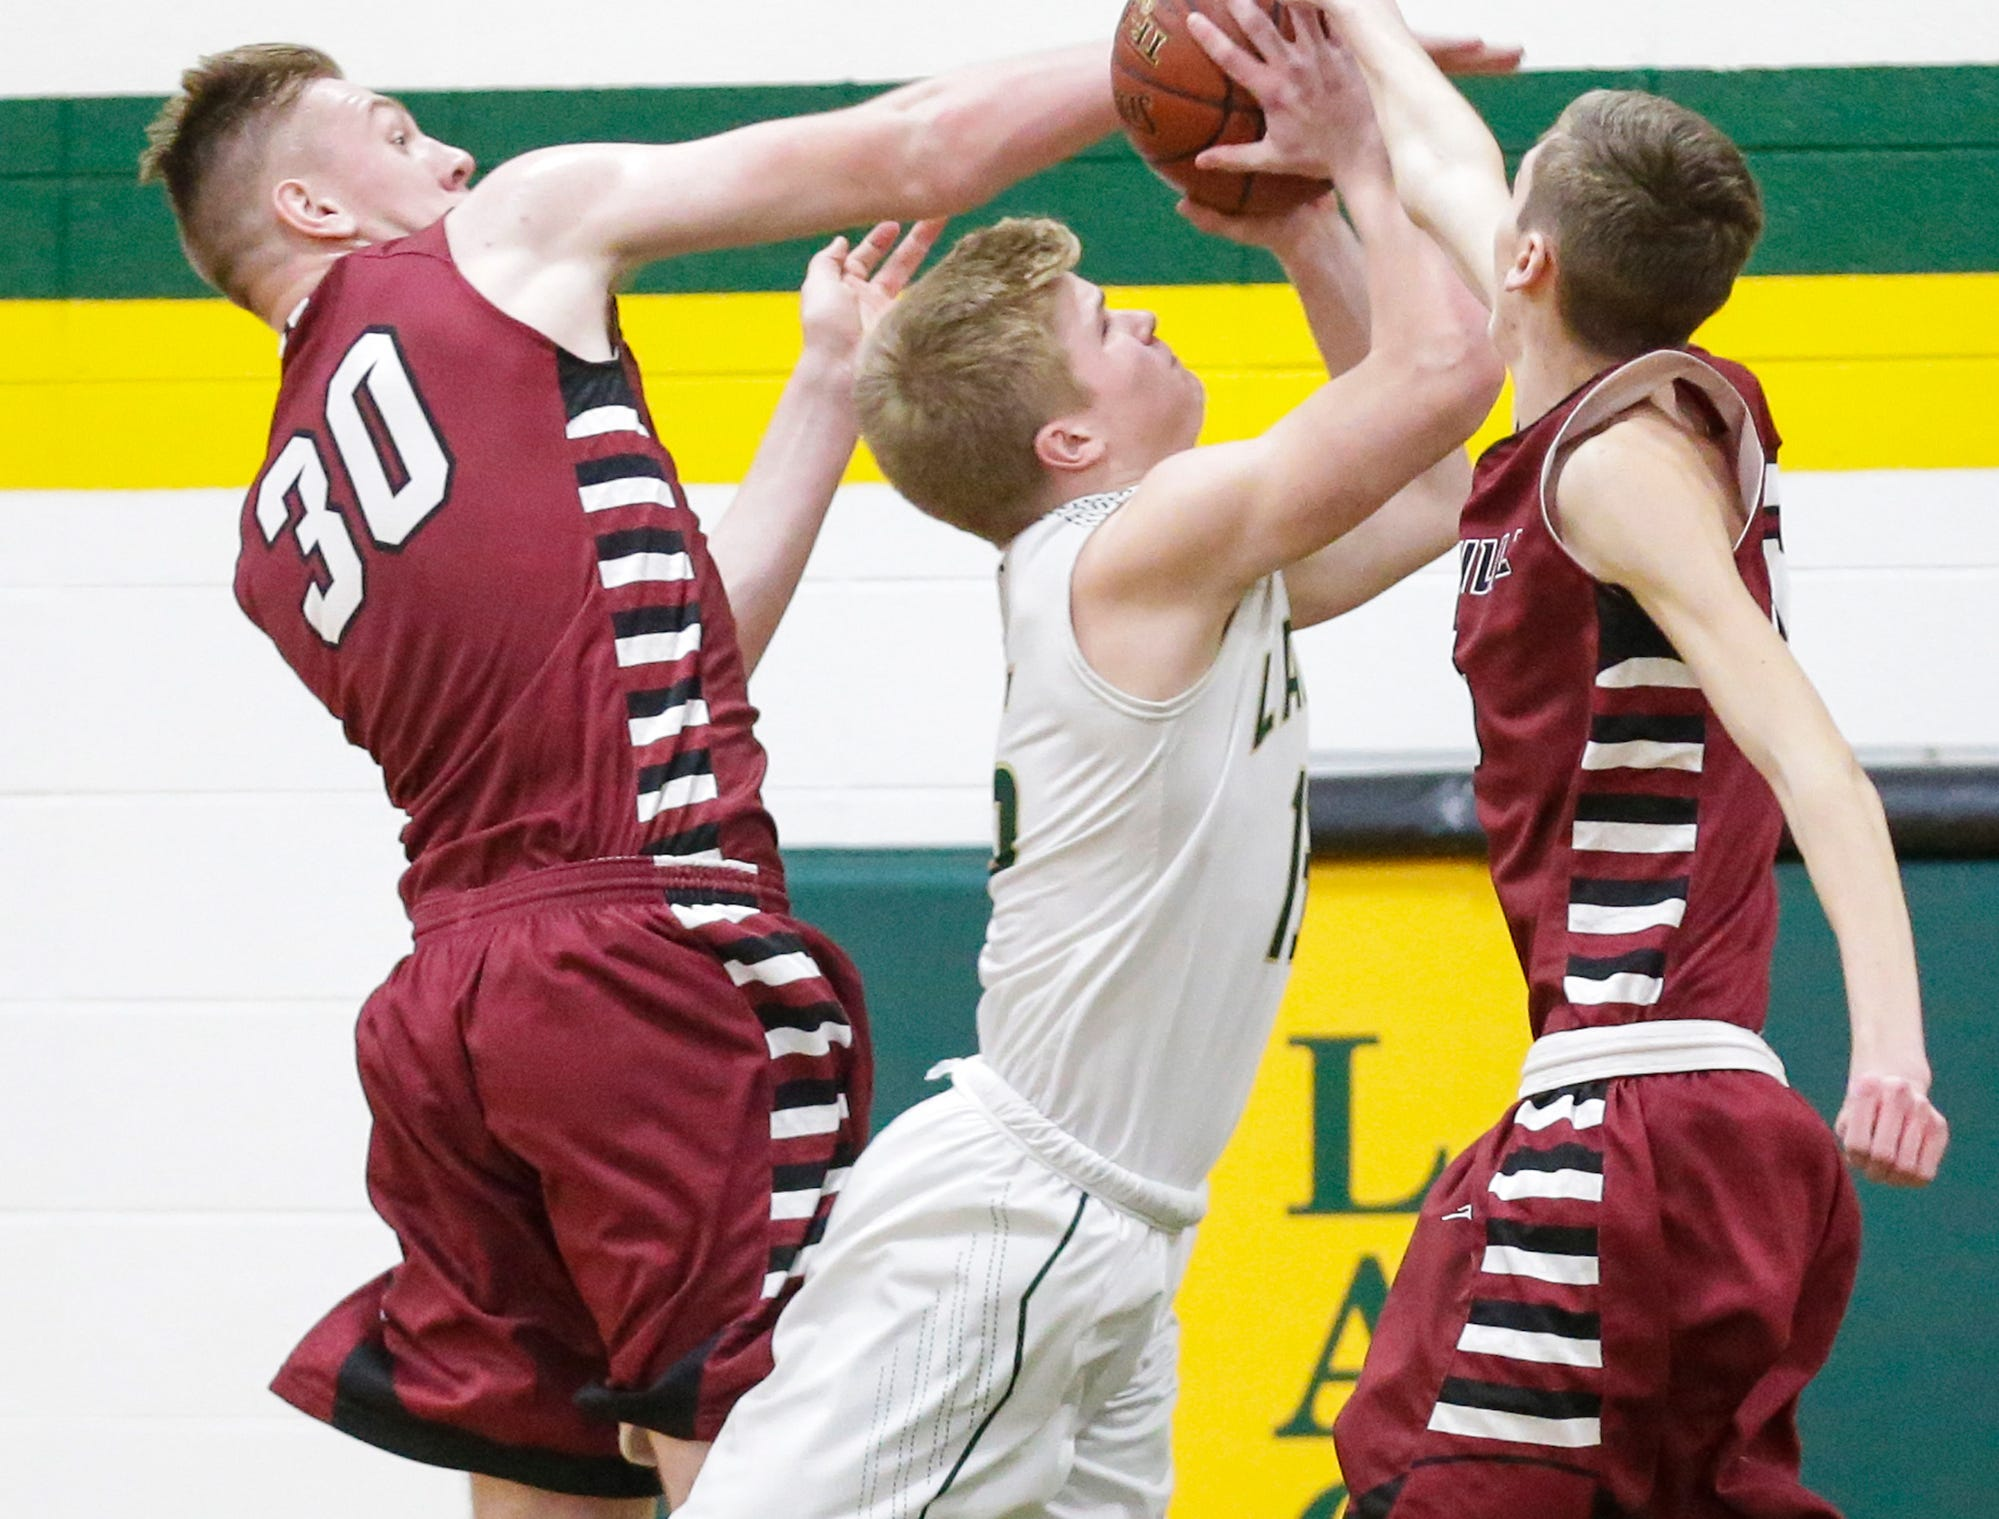 Laconia High School boys basketball's Isaac Leonard shoots between Mayville High School's Logan Arroyo (30) and Isaac Wolf (5) during their game Friday, January 25, 2019 in Rosendale. Laconia won the game 80-54. Doug Raflik/USA TODAY NETWORK-Wisconsin